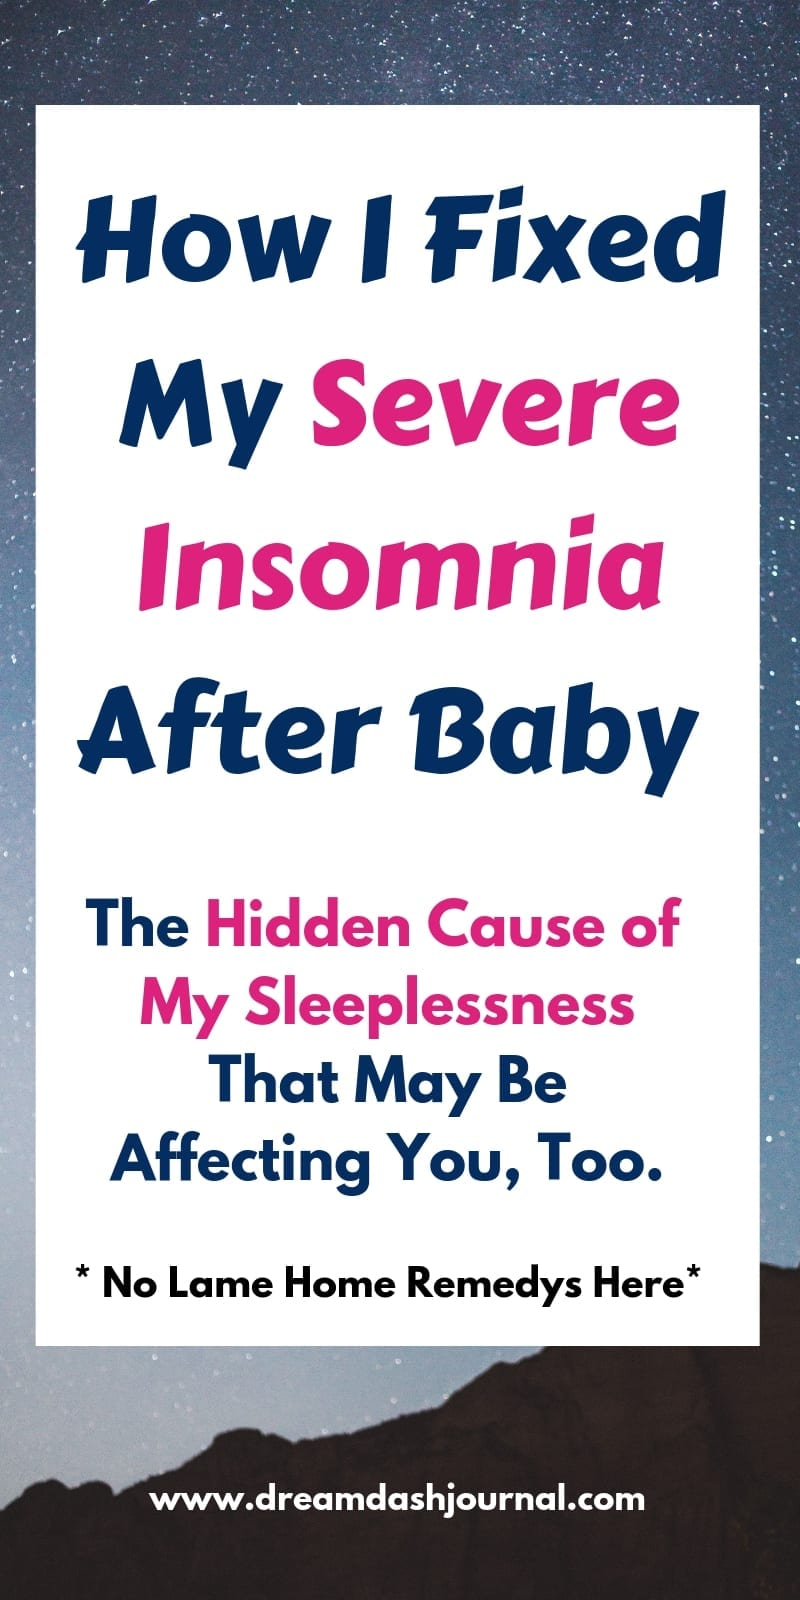 Insomnia Causes and Cures For Severe Sleep Problems After Baby